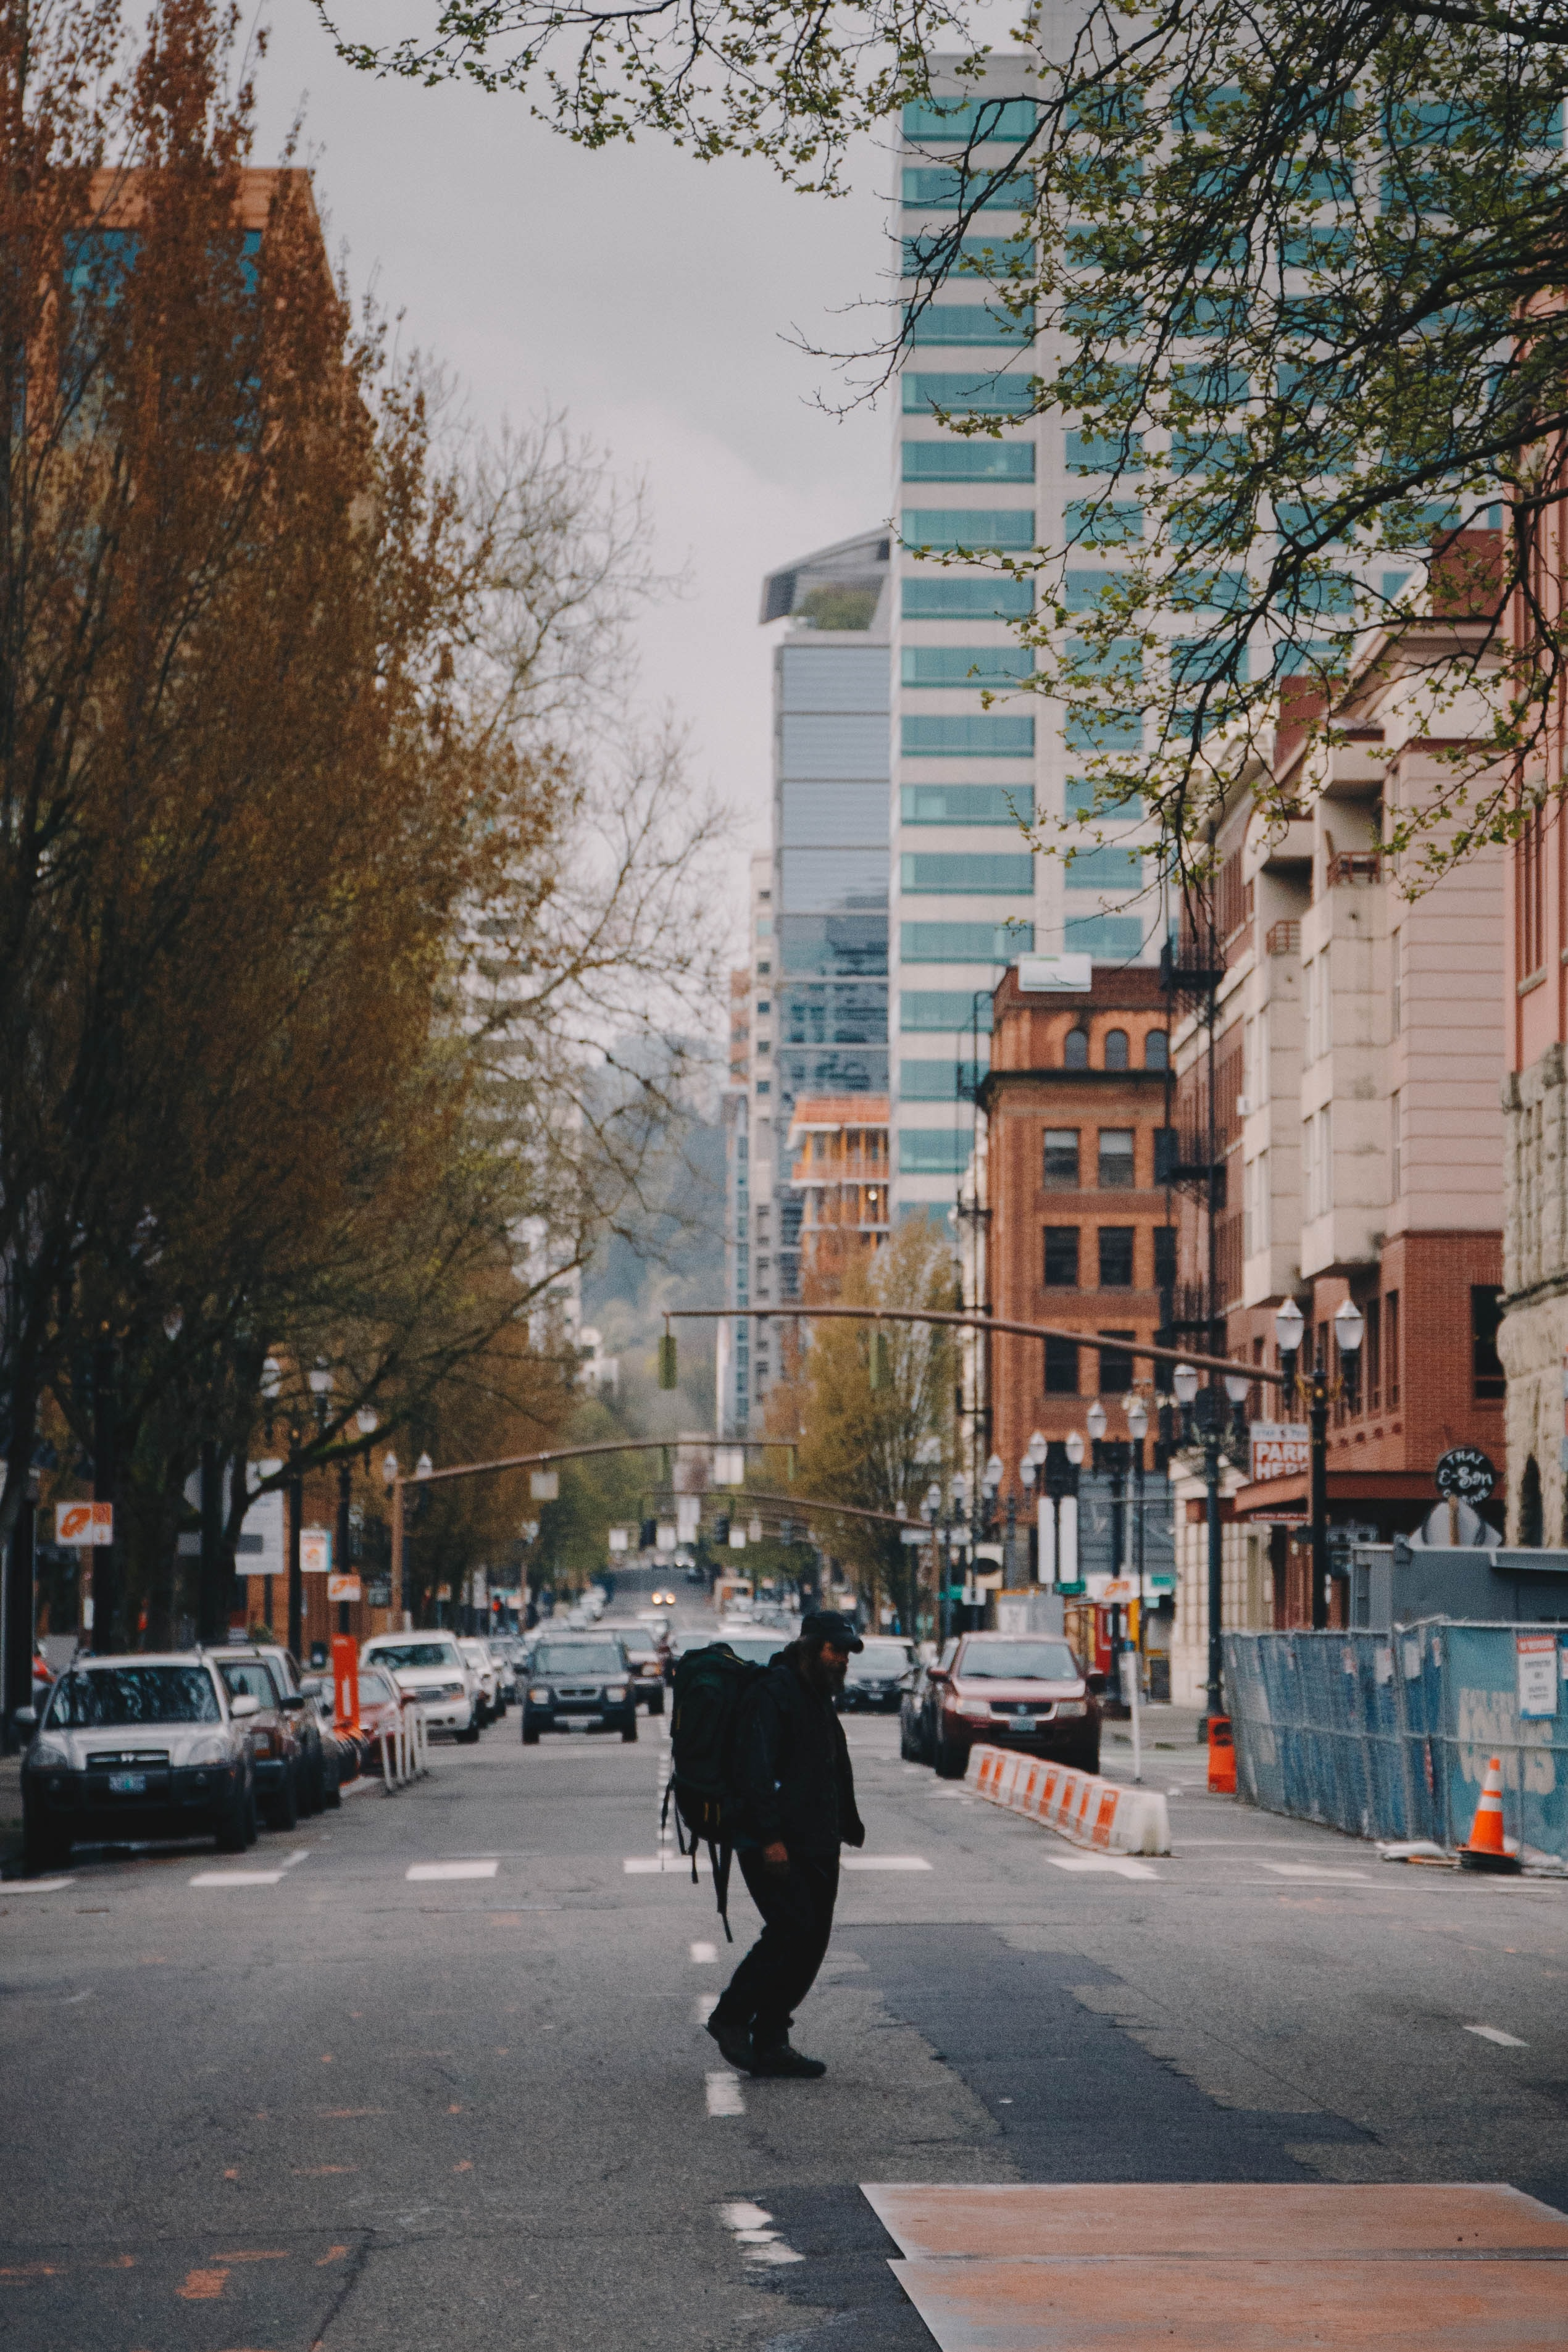 man carrying backpack walking on road